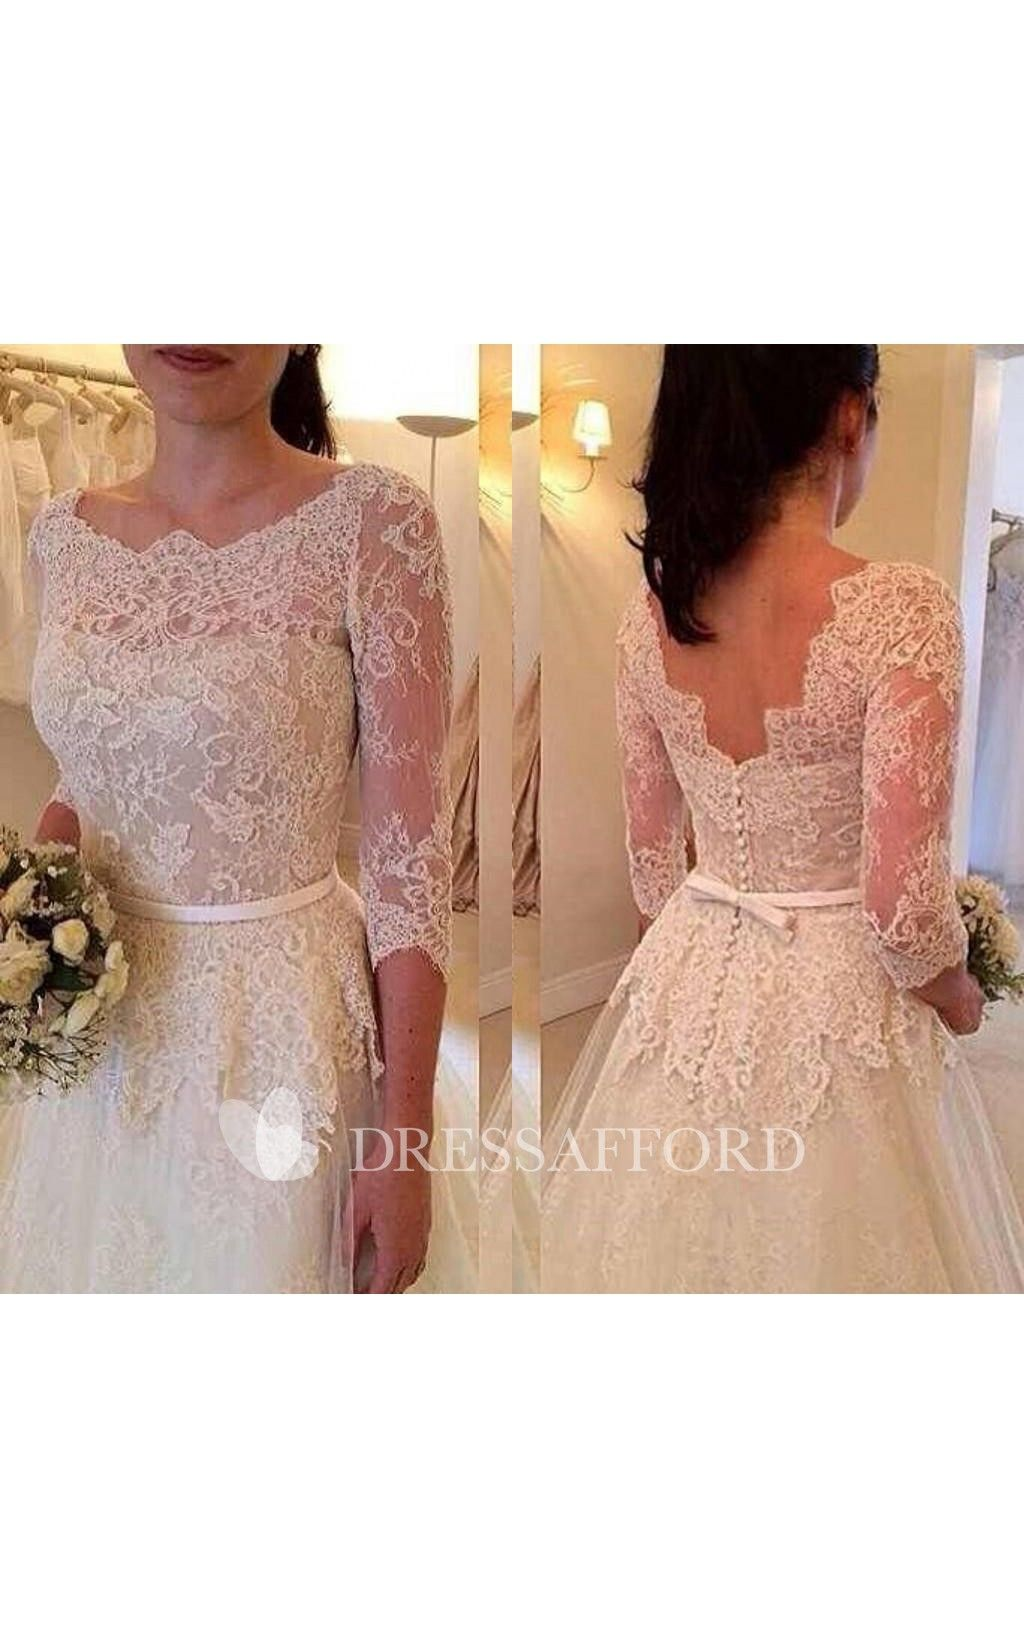 Scoopneck Lace Aline Tulle Dress With LowV Back Lace